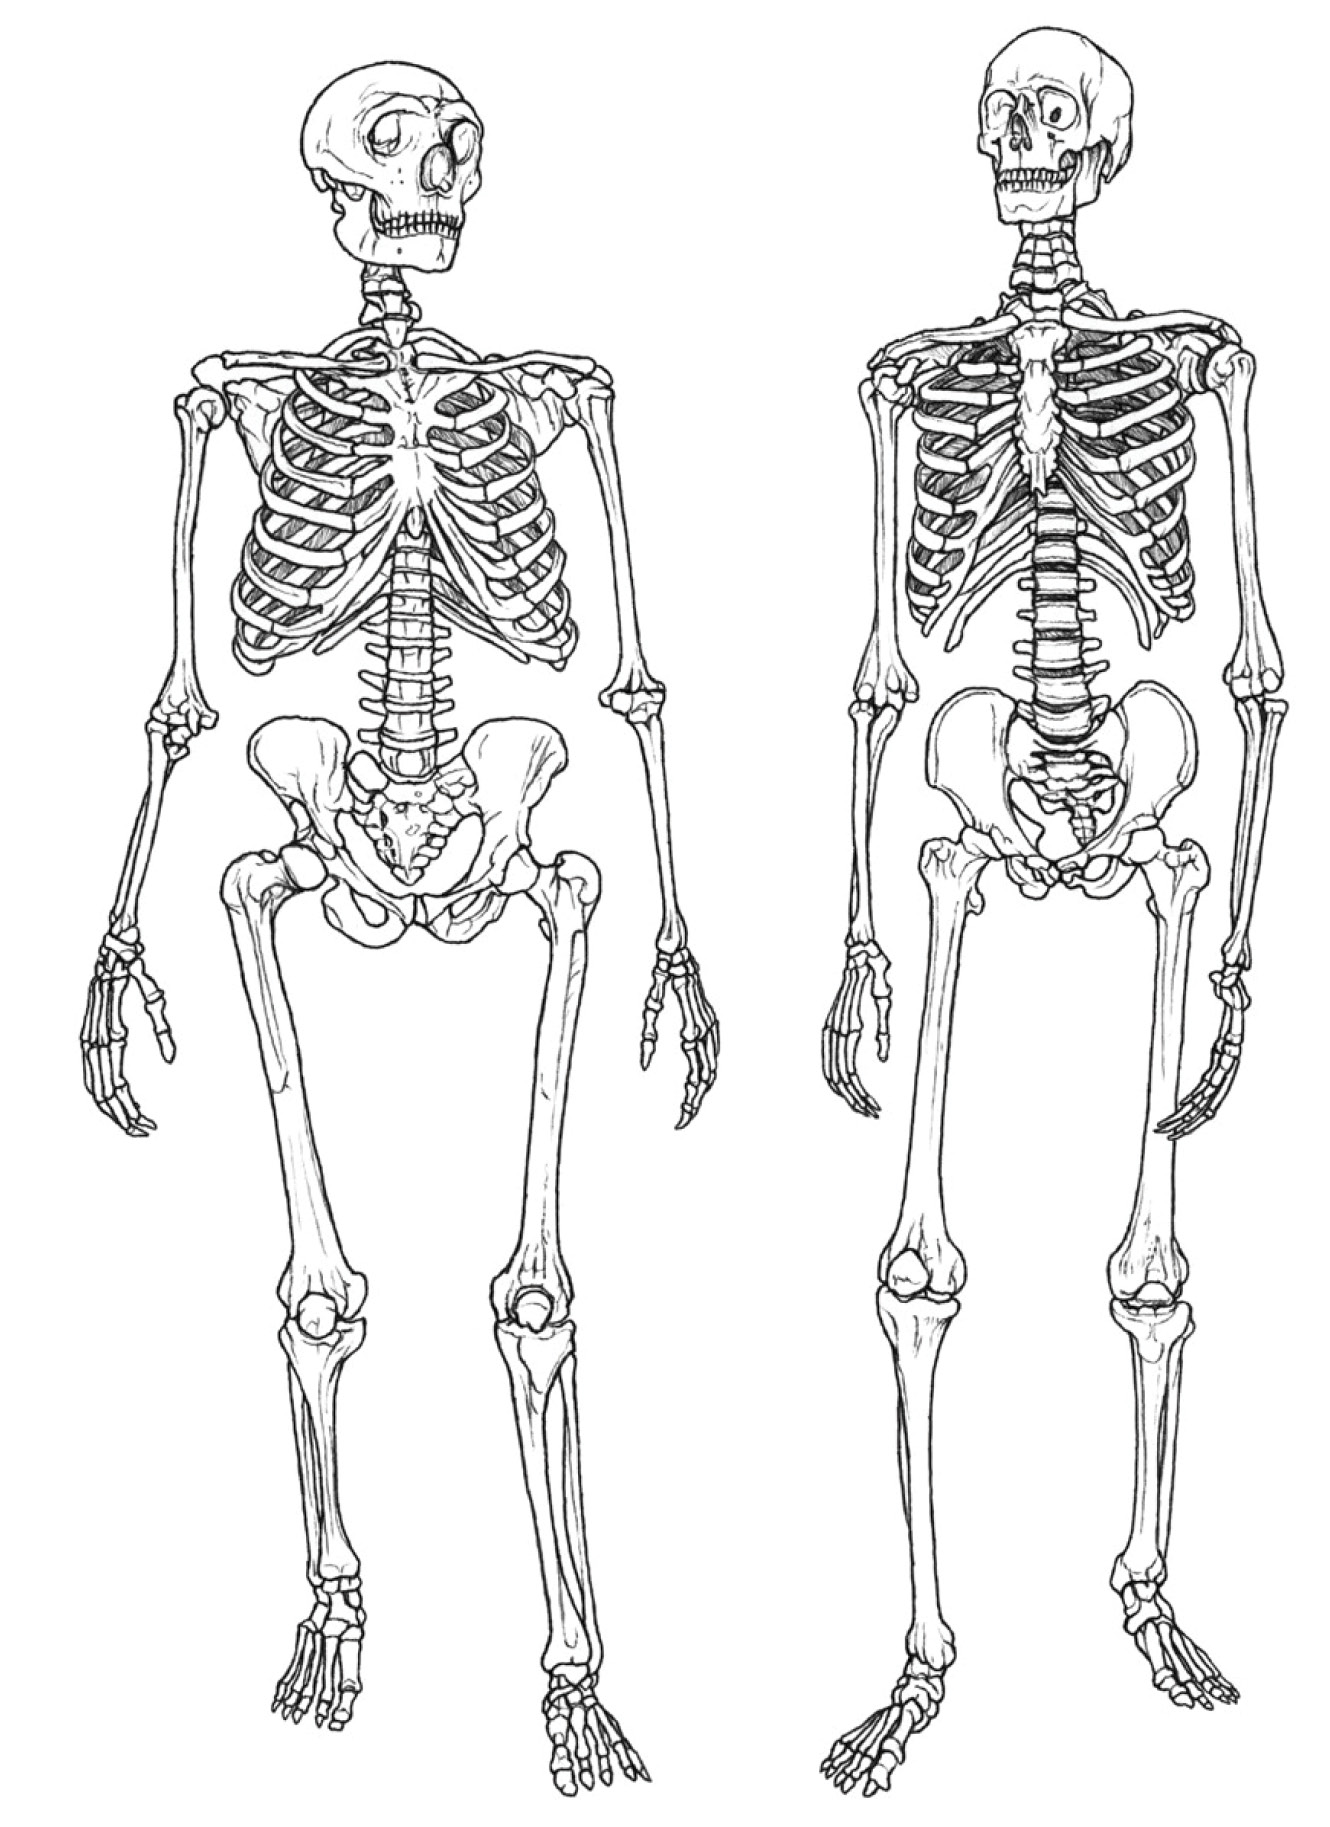 left While Neanderthals and Homo sapiens show clear anatomical differences, DNA analysis confirms that there were multiple episodes of interbreeding between the two hominin subspecies.